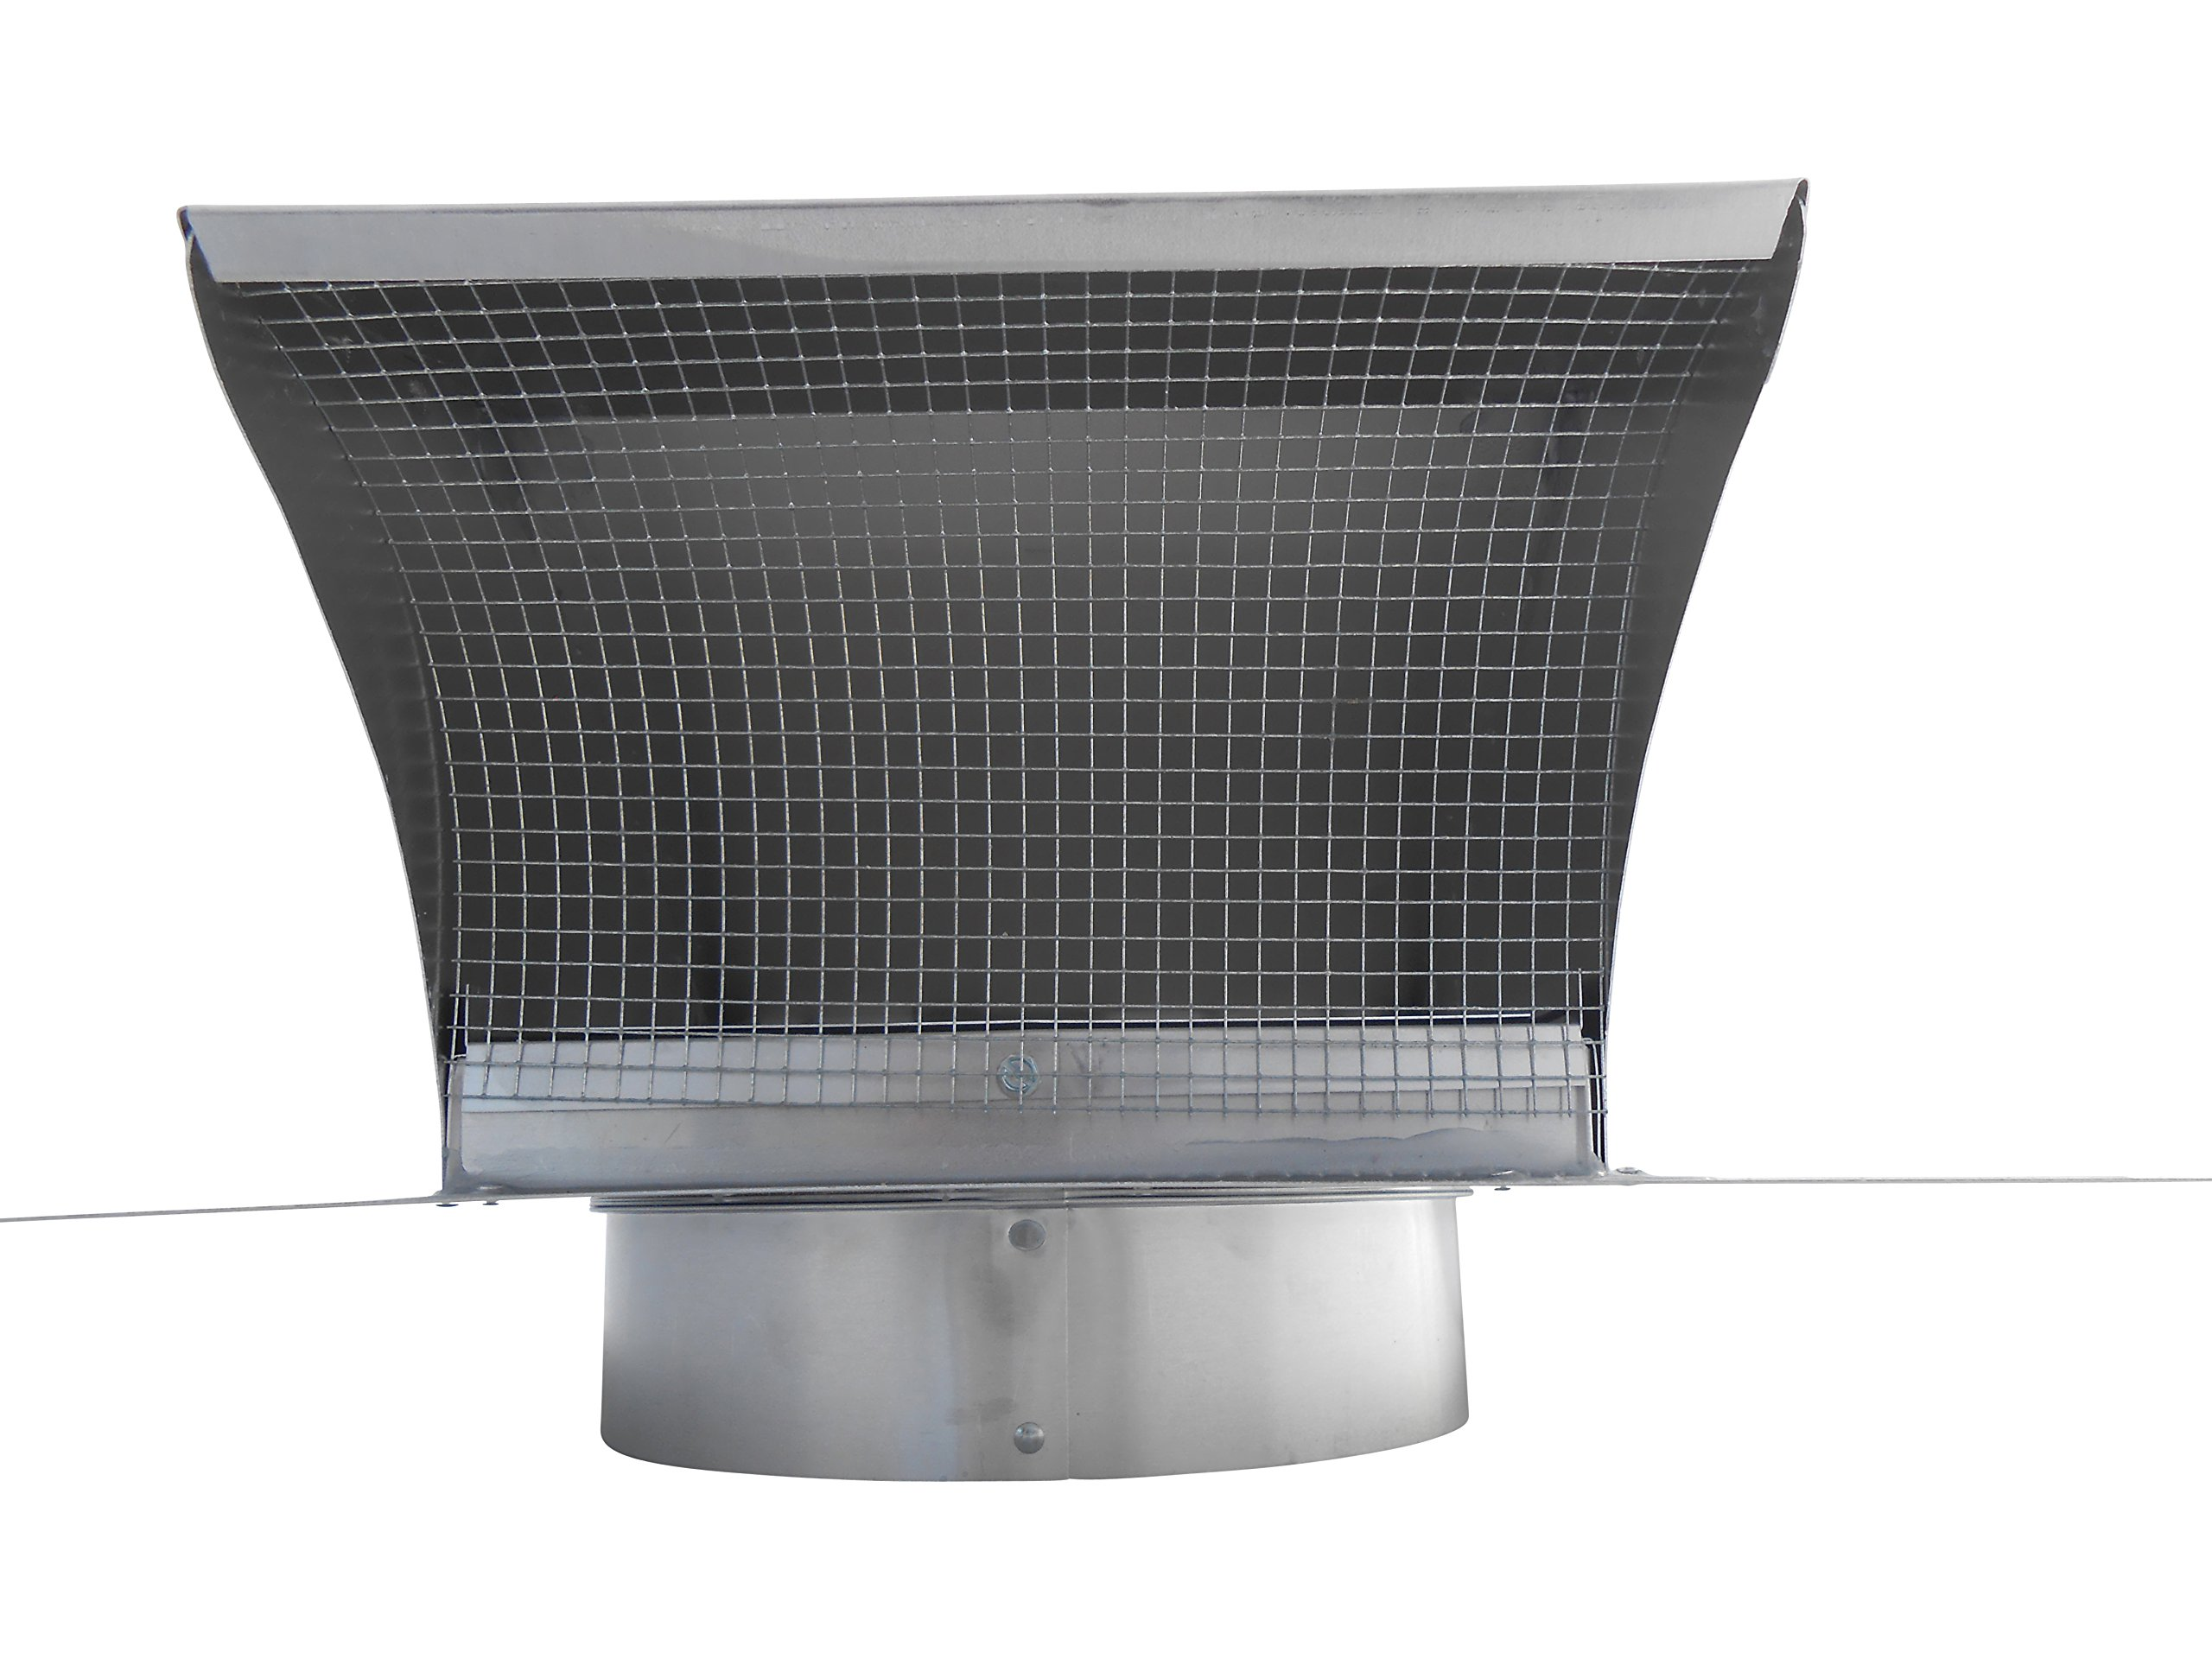 5 Inch Roof Vent Hood Cap Galvanized Damper & Screen - Vent Works by Vent Works (Image #6)